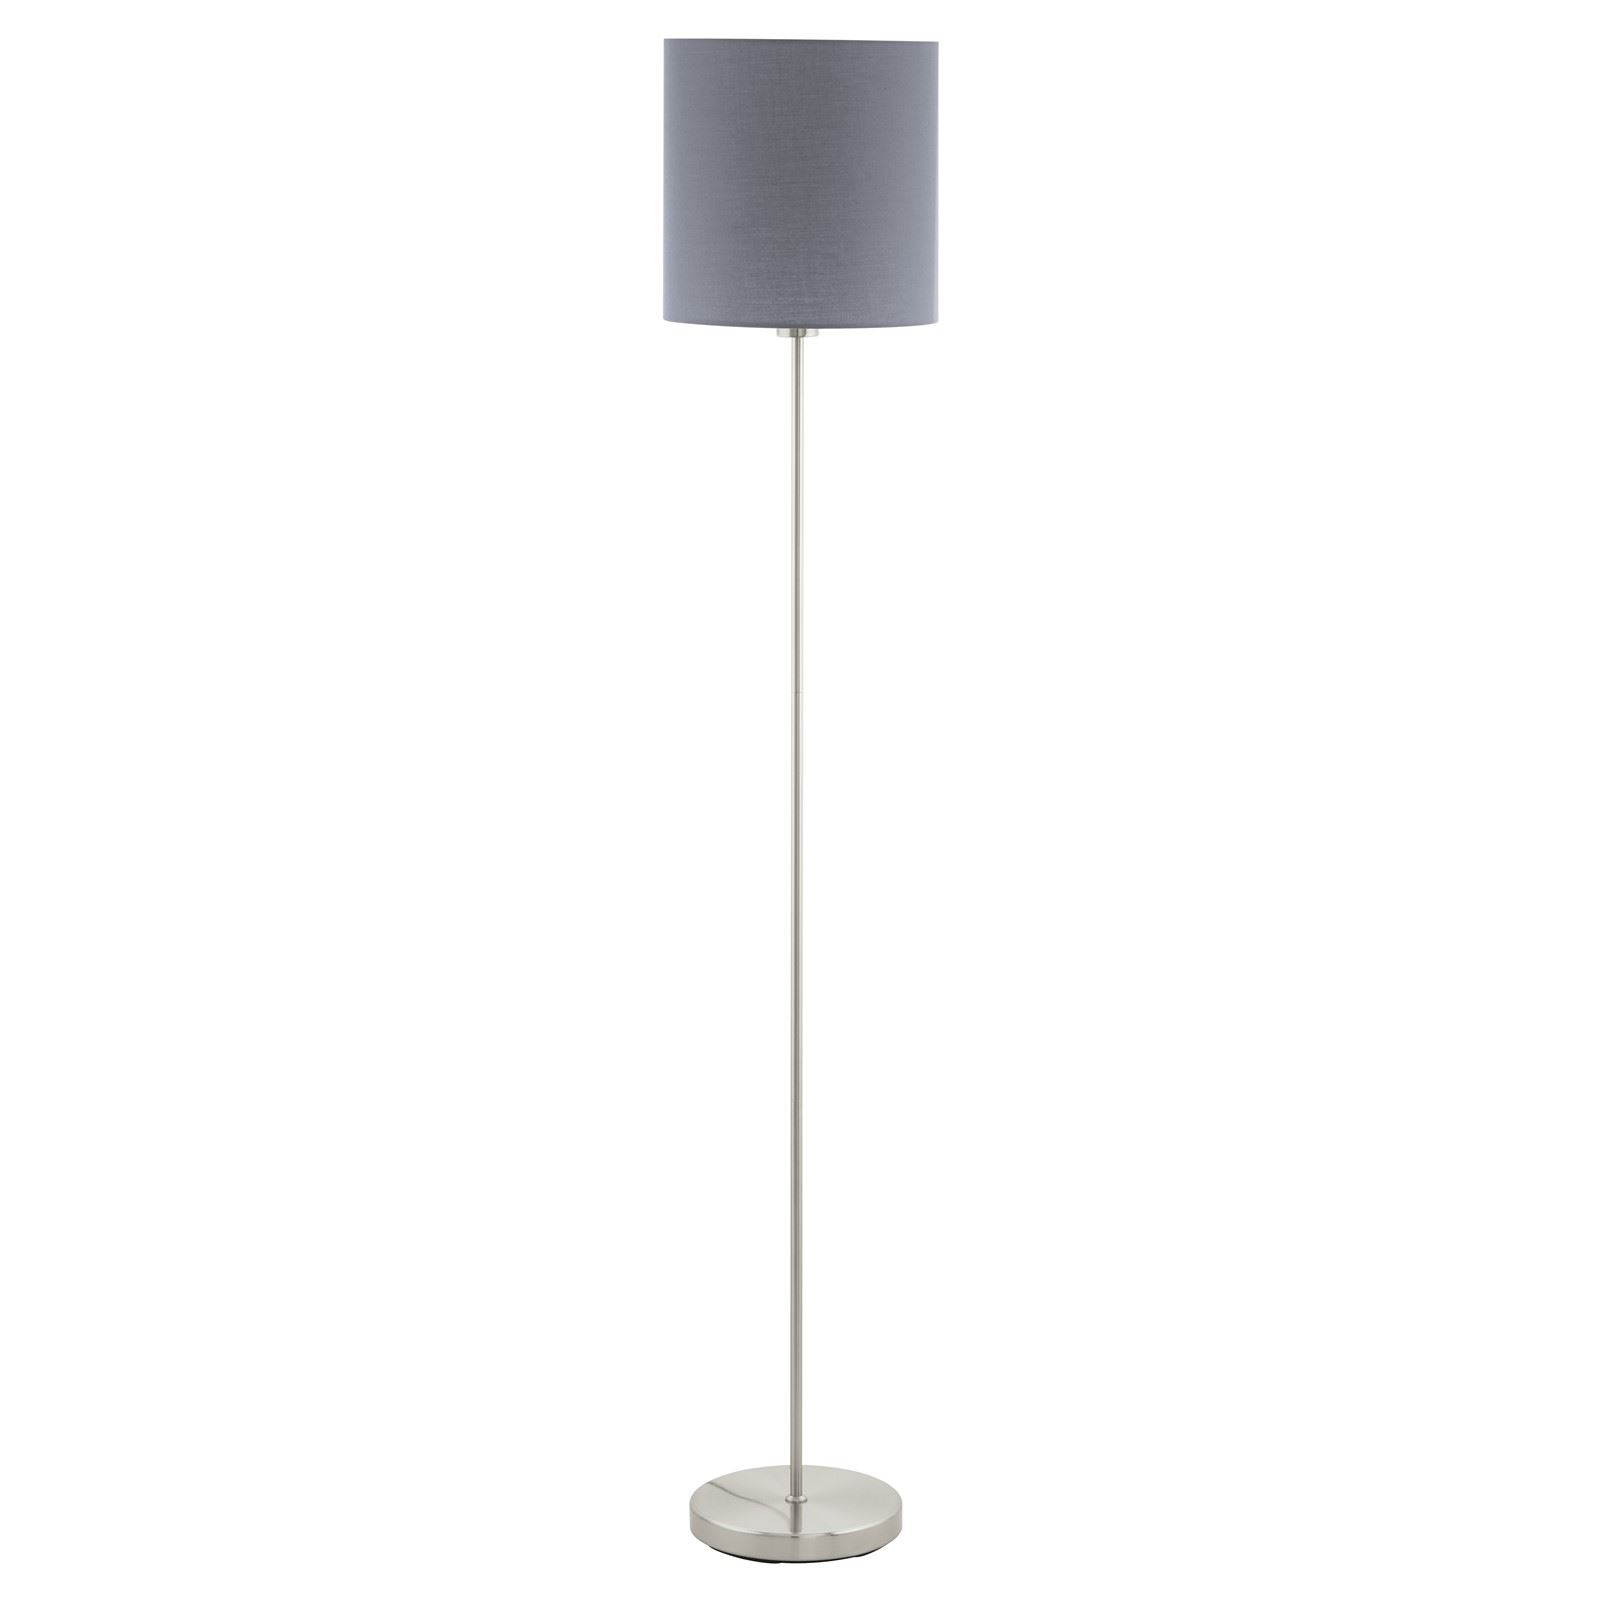 Pasteri Satin Nickel Floor Lamp Grey Shade With Foot-Switch